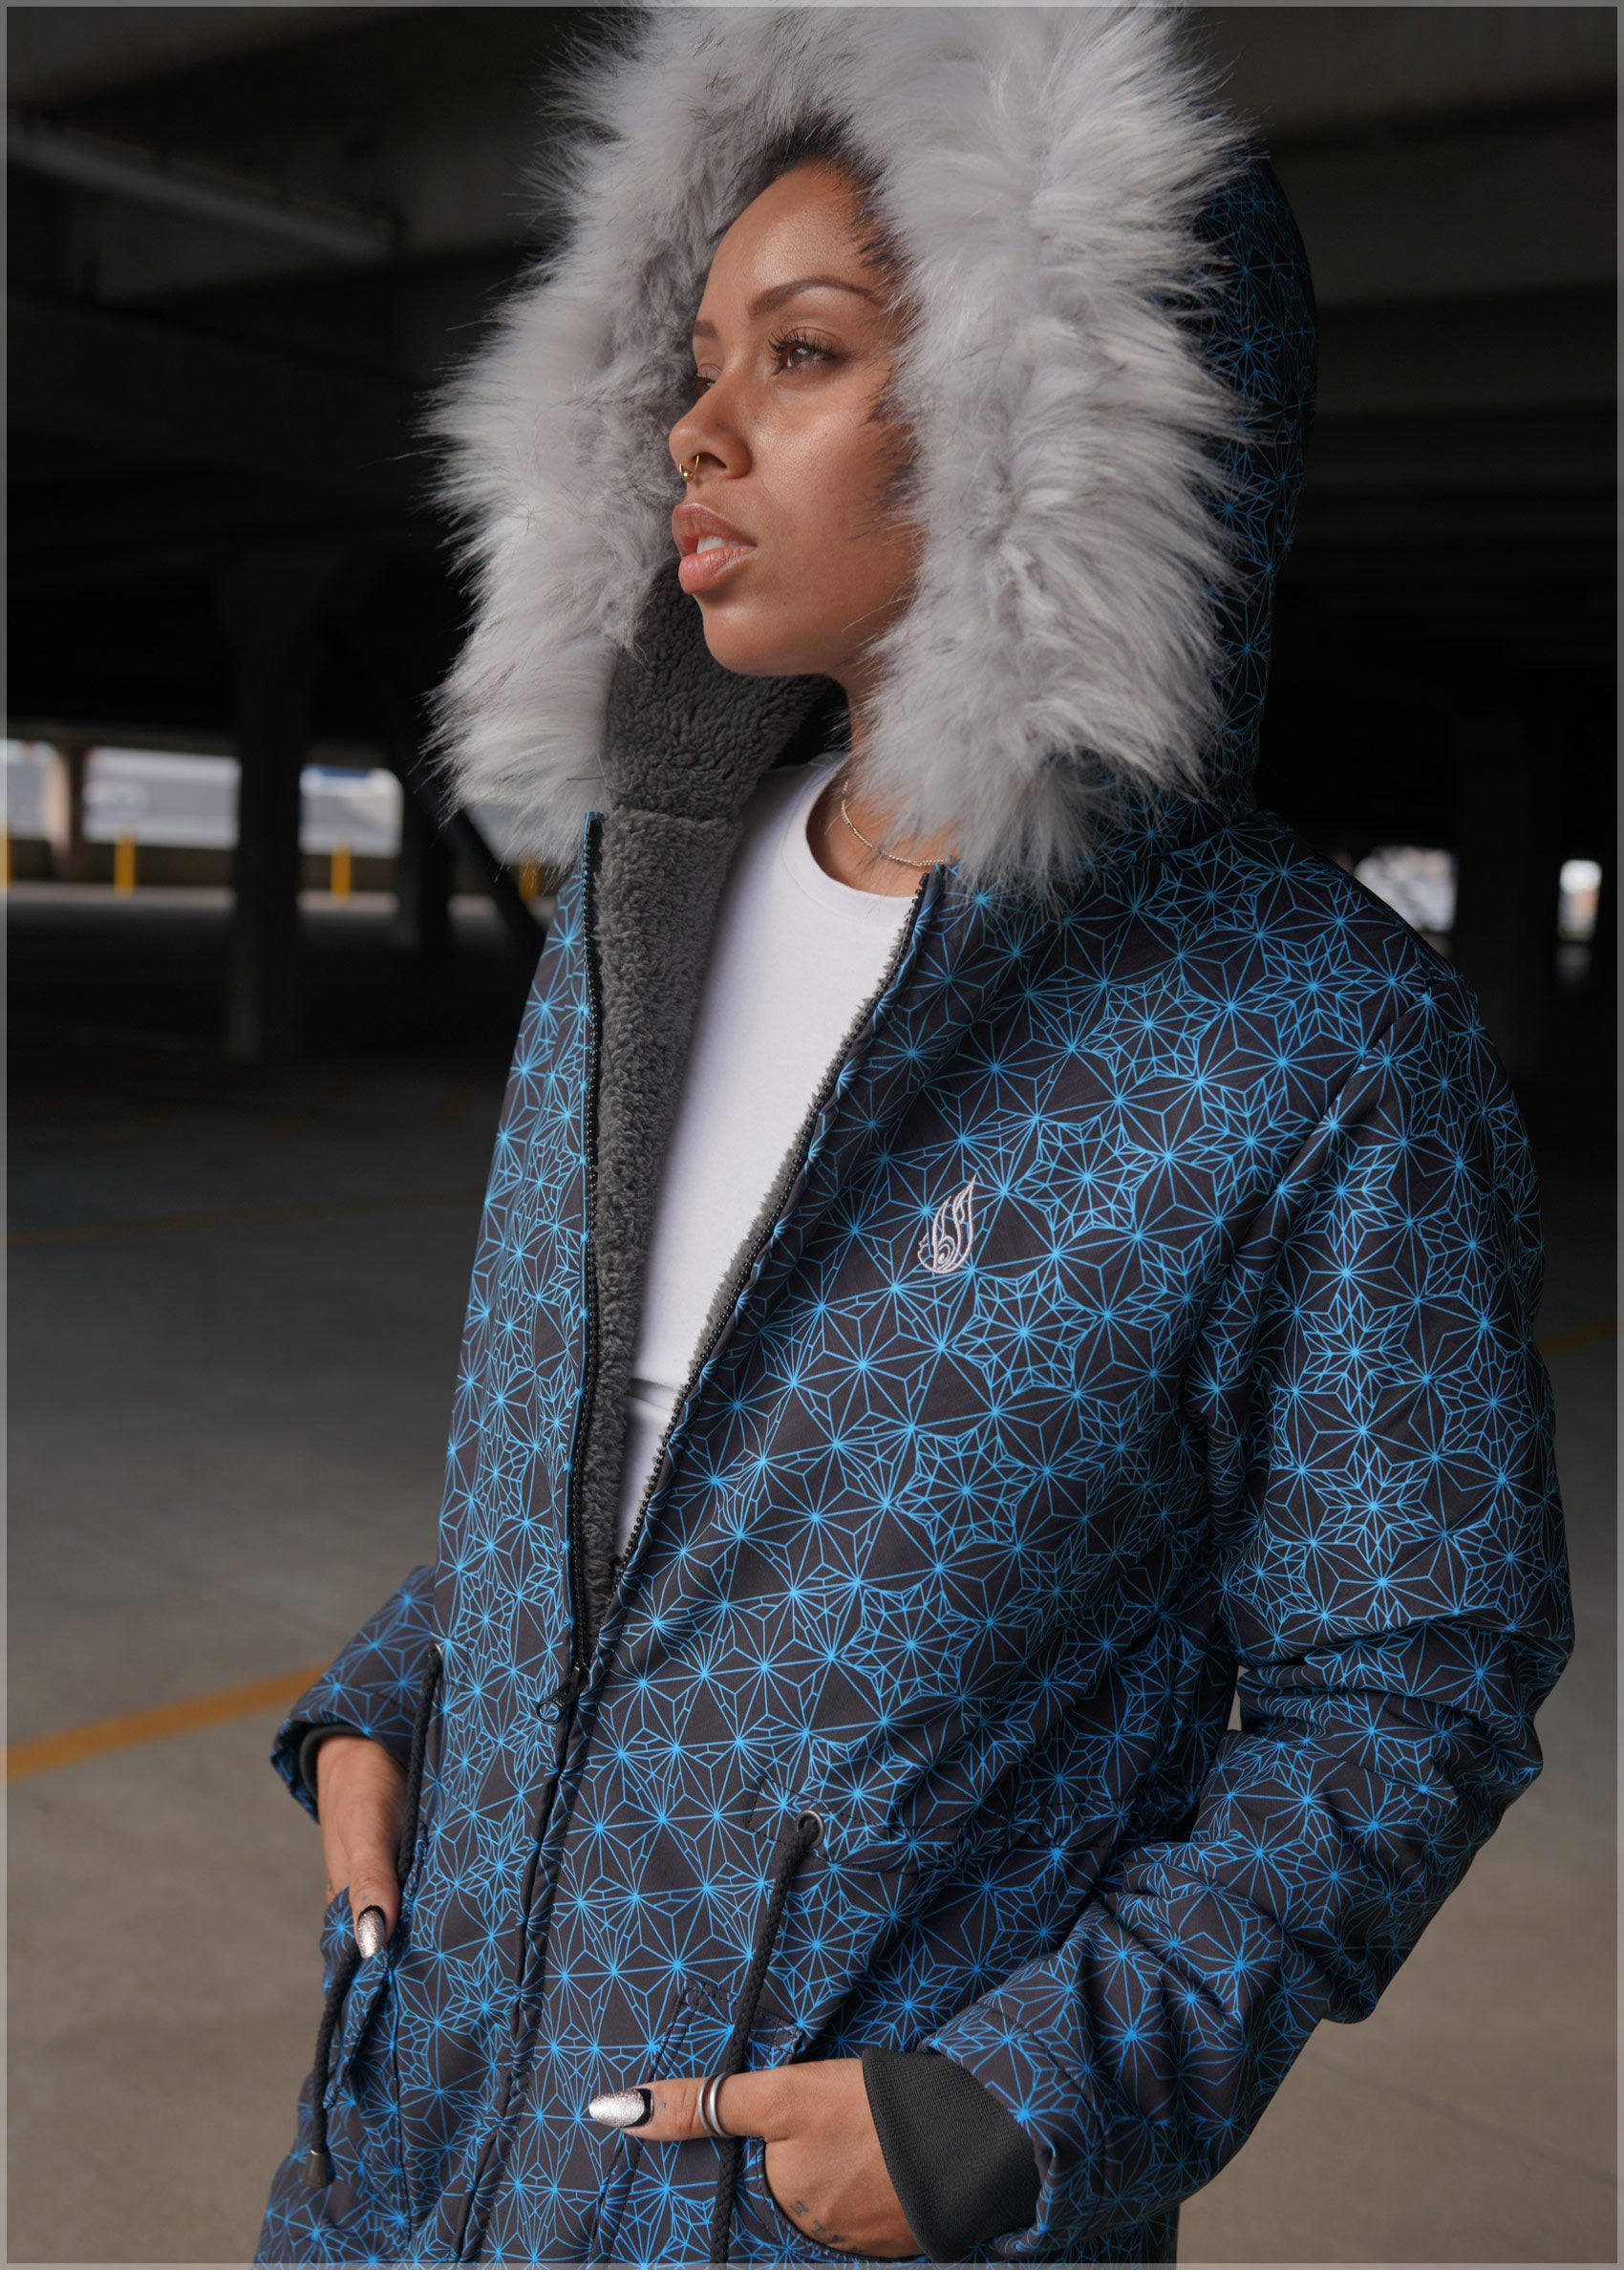 Starseed Sherpa Jacket by Kimi Takemura